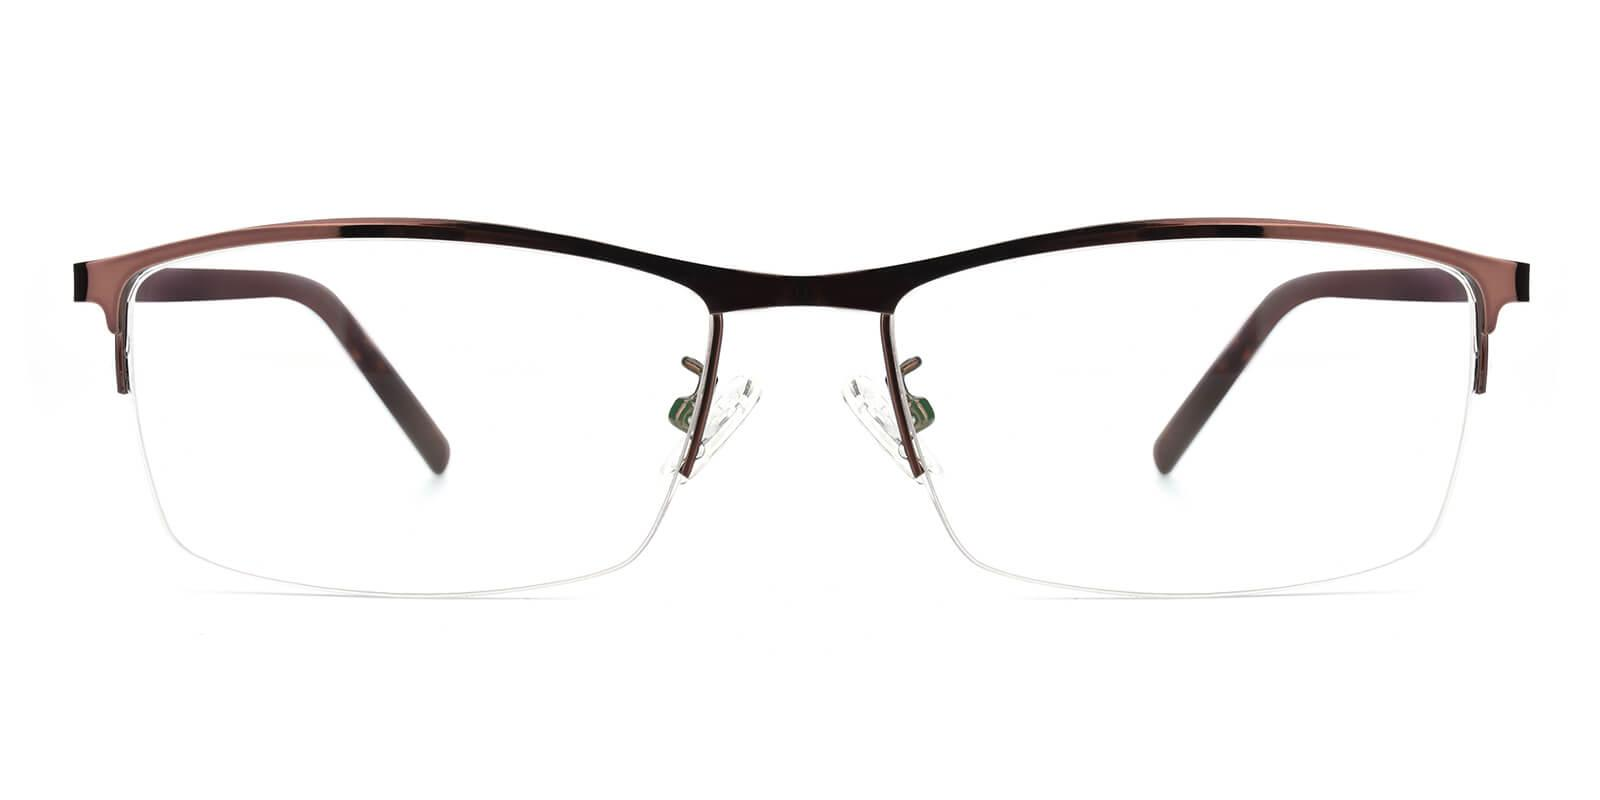 Elegant-Brown-Rectangle-Metal-Eyeglasses-additional2